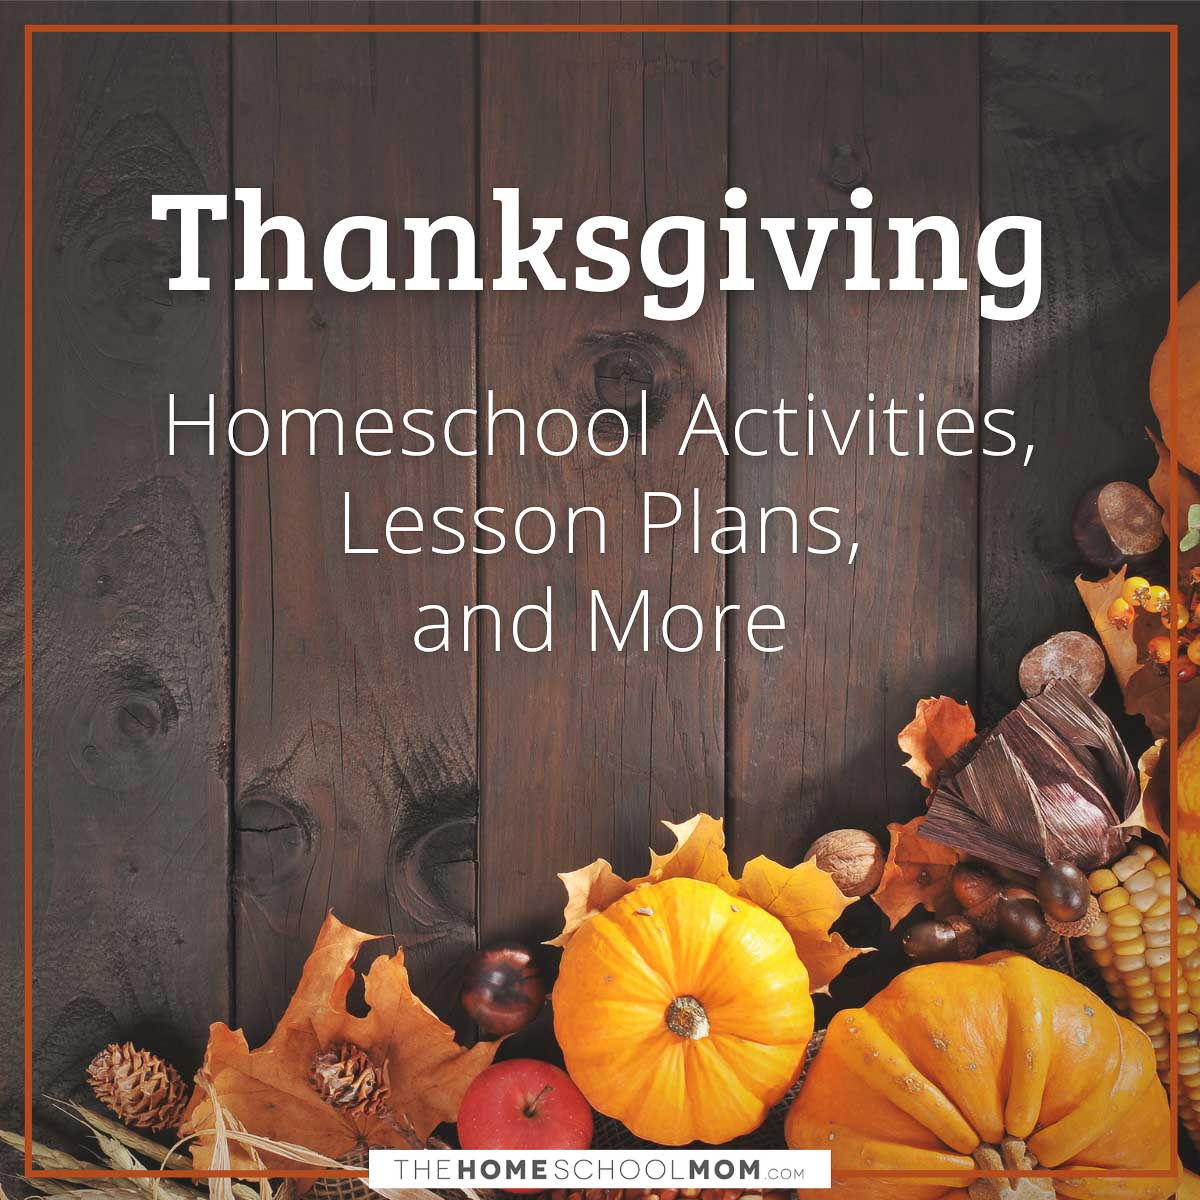 hight resolution of Thanksgiving   TheHomeSchoolMom